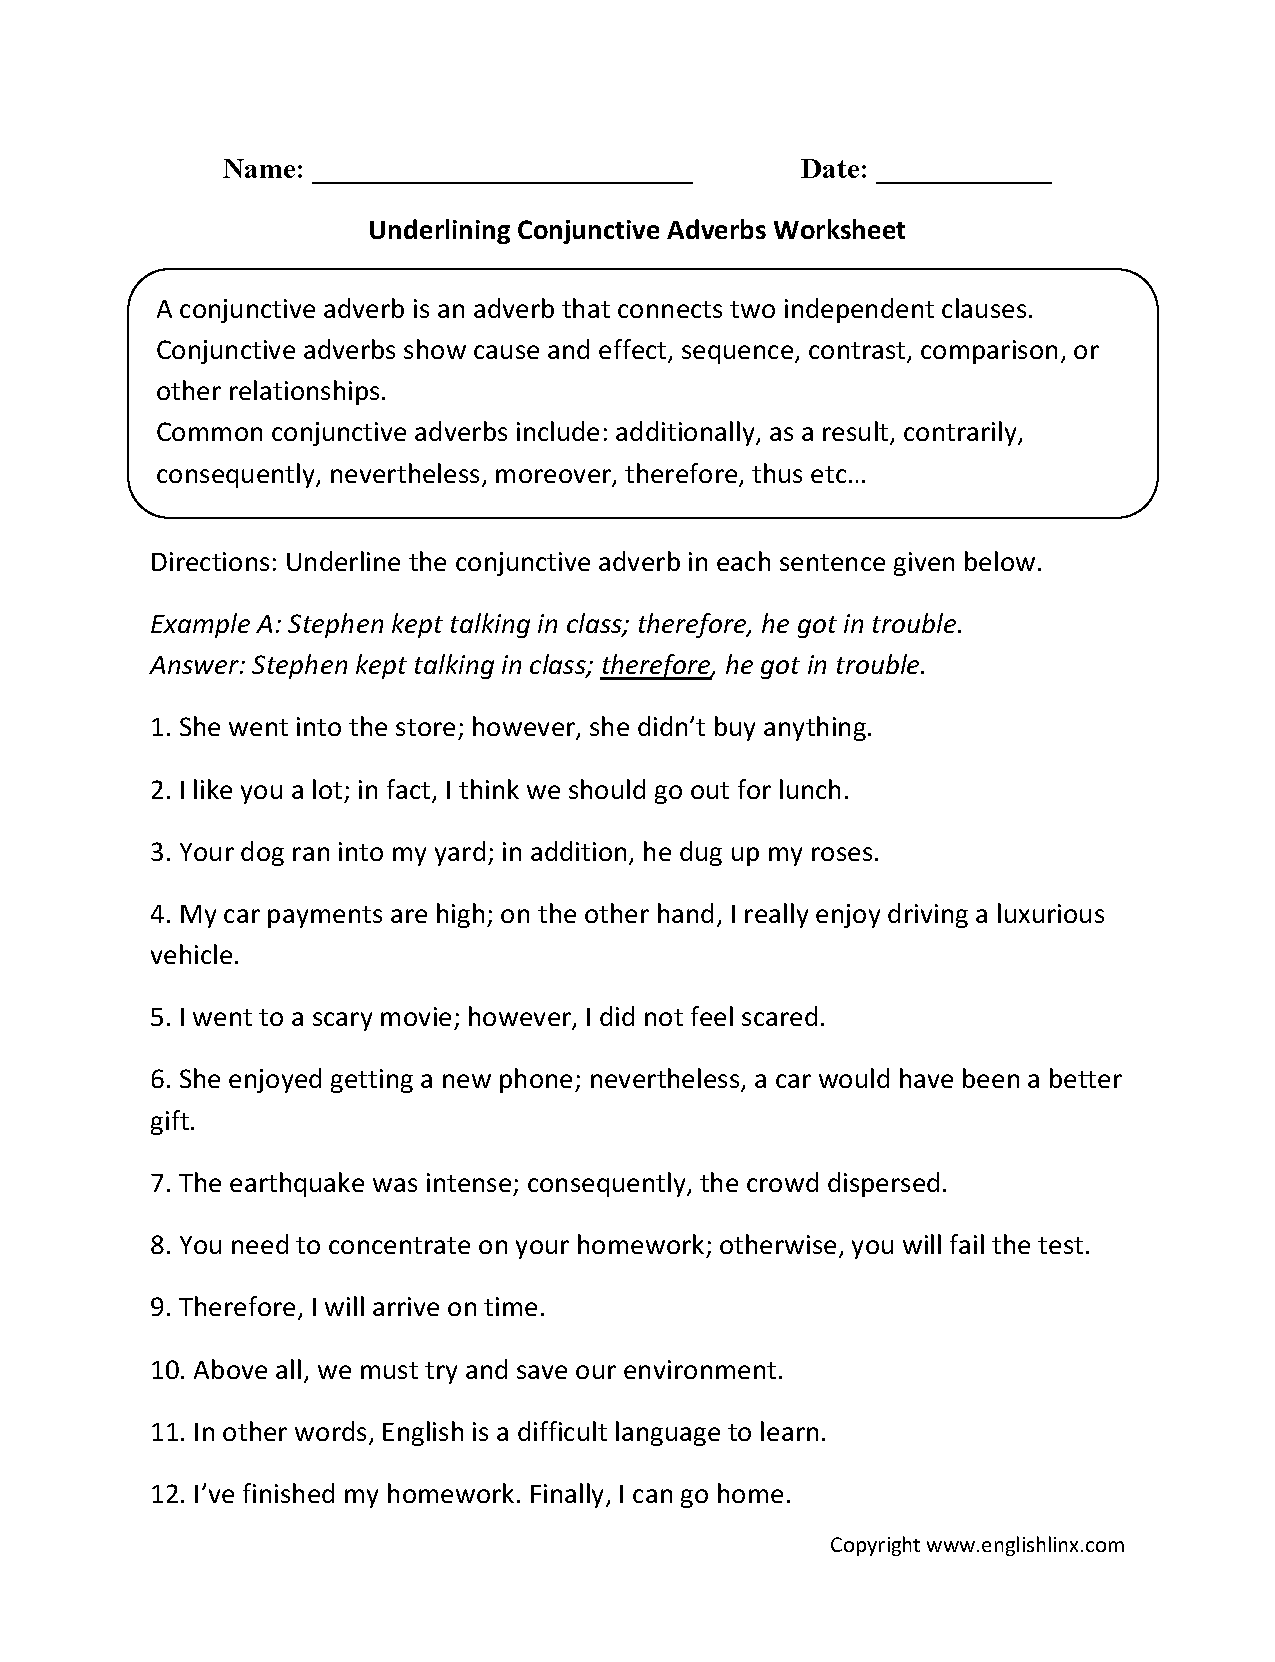 Weirdmailus  Surprising Englishlinxcom  Conjunctions Worksheets With Inspiring Worksheet With Agreeable Year  Division Worksheets Also Worksheets On Divisibility Rules In Addition Year  Comprehension Worksheets And Free Printable Science Worksheets For Th Grade As Well As Reading Comprehension Worksheets For Grade  Additionally Logic Puzzles Printable Worksheets From Englishlinxcom With Weirdmailus  Inspiring Englishlinxcom  Conjunctions Worksheets With Agreeable Worksheet And Surprising Year  Division Worksheets Also Worksheets On Divisibility Rules In Addition Year  Comprehension Worksheets From Englishlinxcom